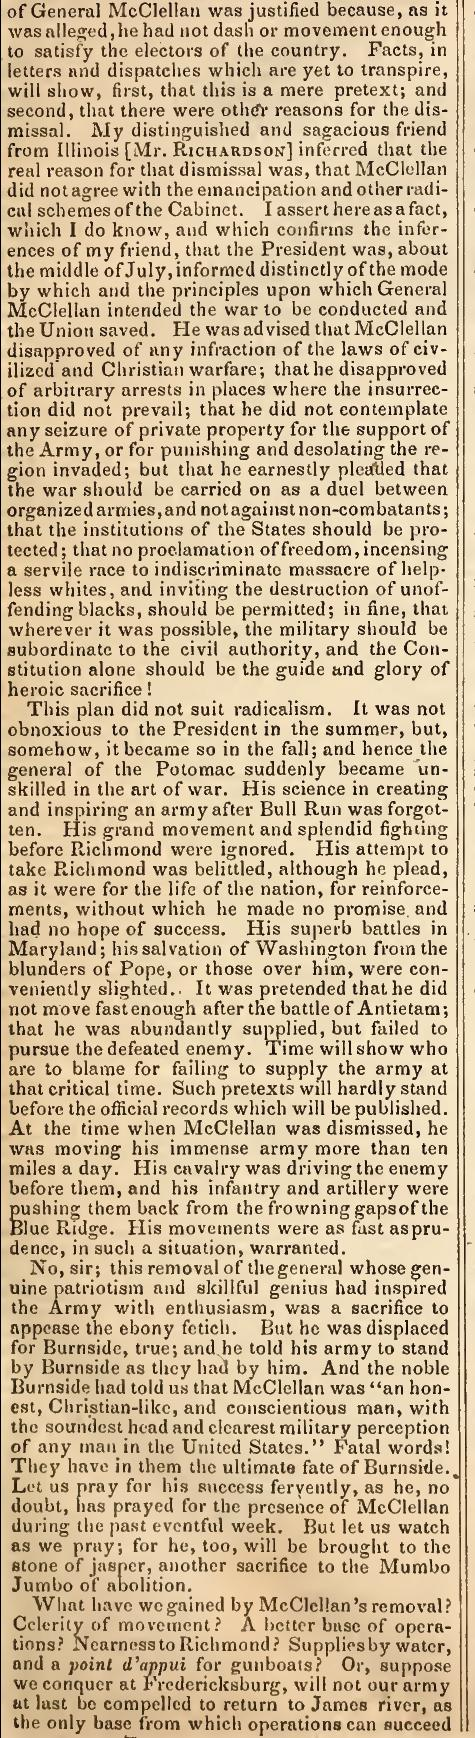 Democratic House member Samuel Cox of Ohio criticizes President Lincoln's dismissal of General McClellan � Congressional Globe December 18, 1862